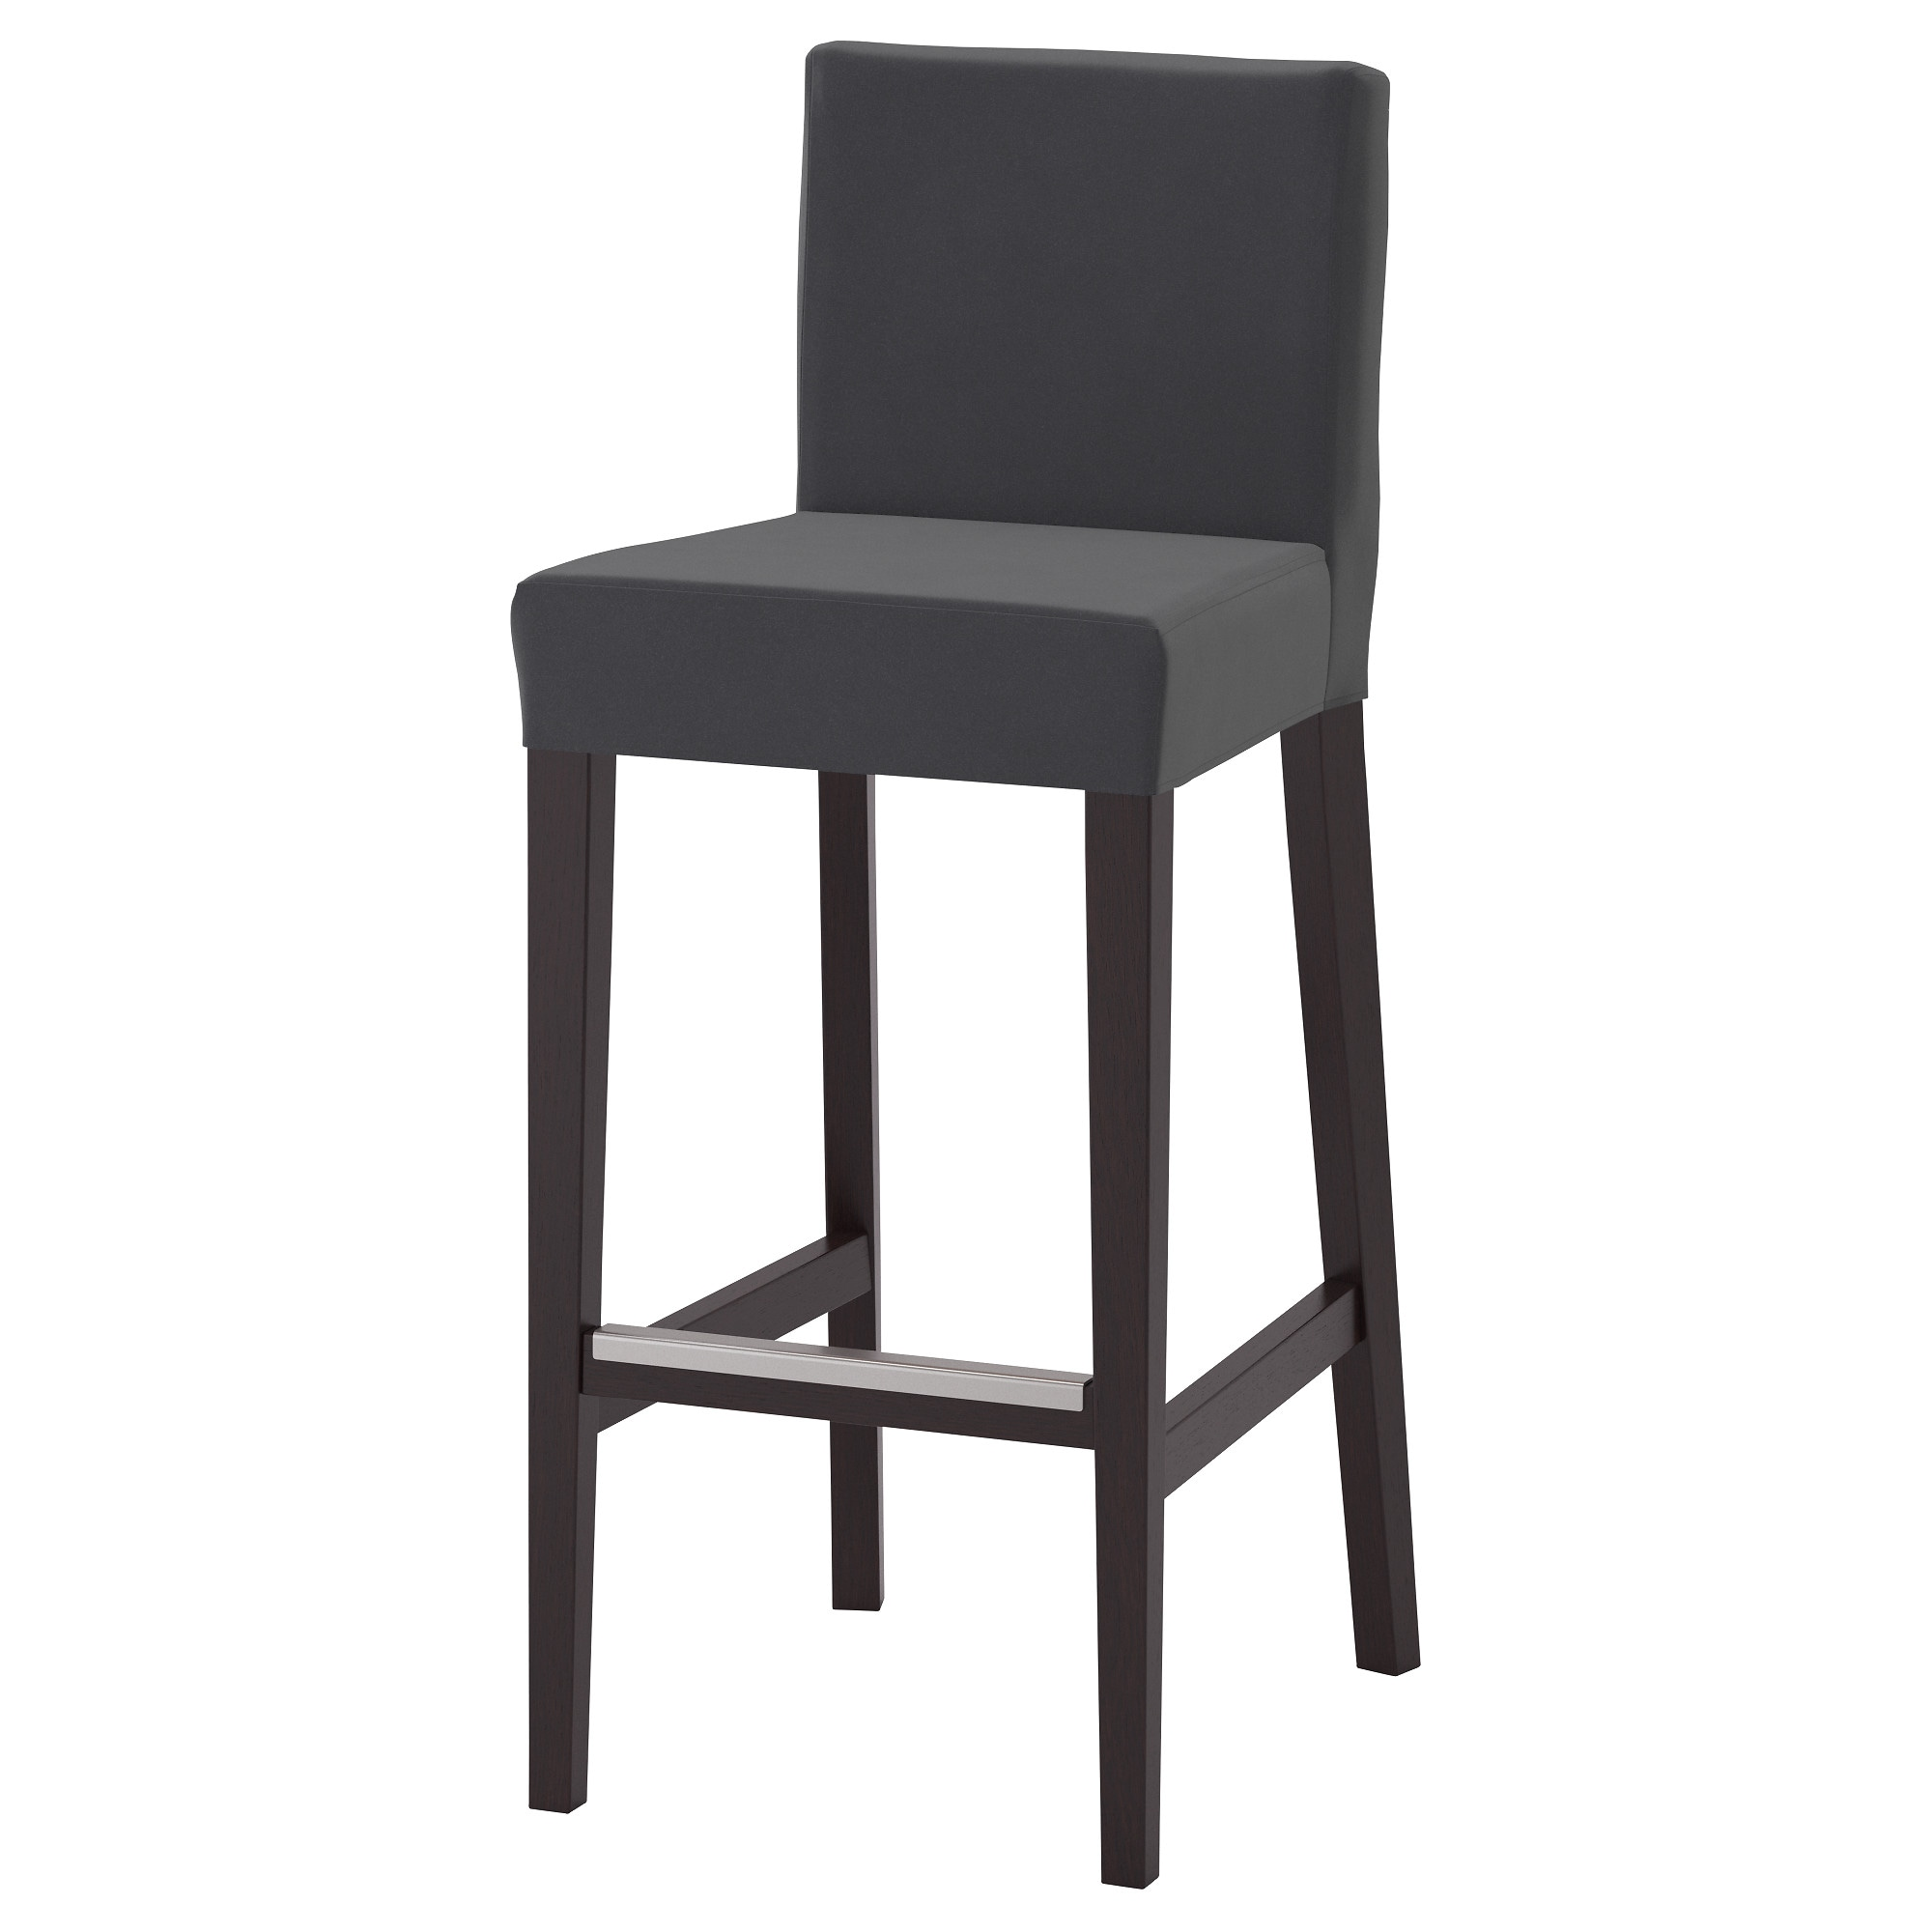 Bar Stools Cheap X Back Counter Stool Modern Barstools Counter Height Folding Chairs Large